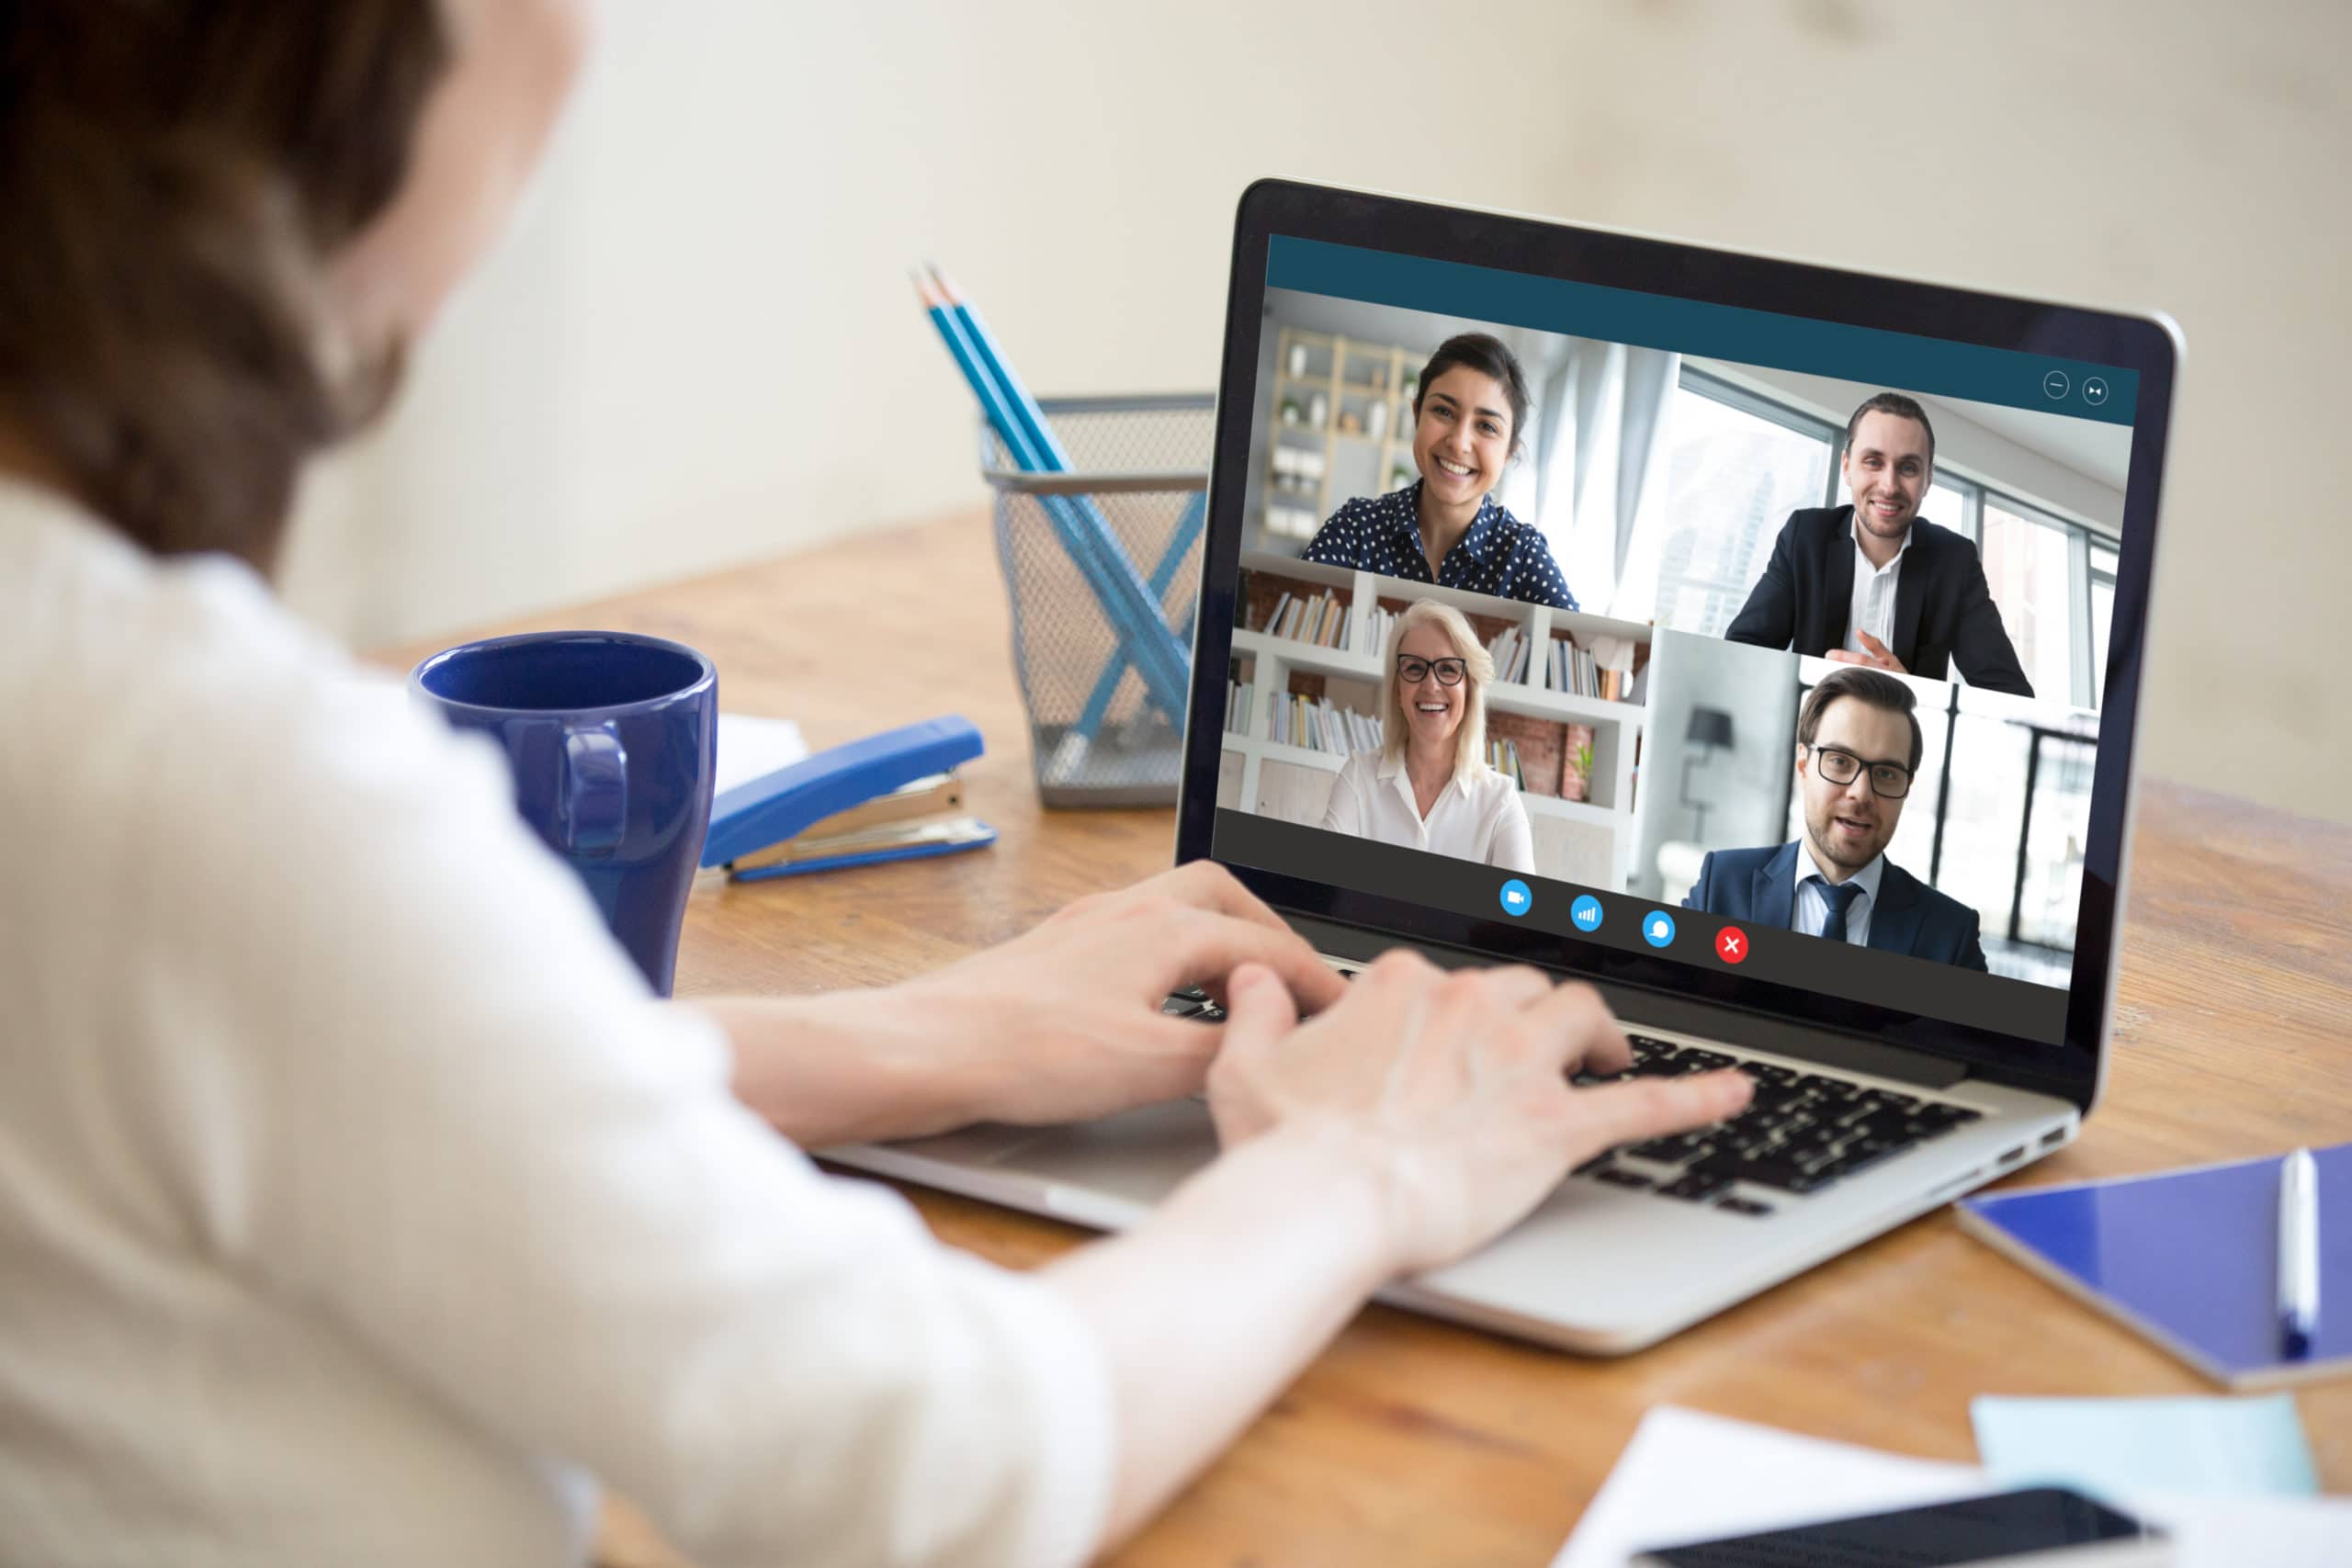 being safe with video chats